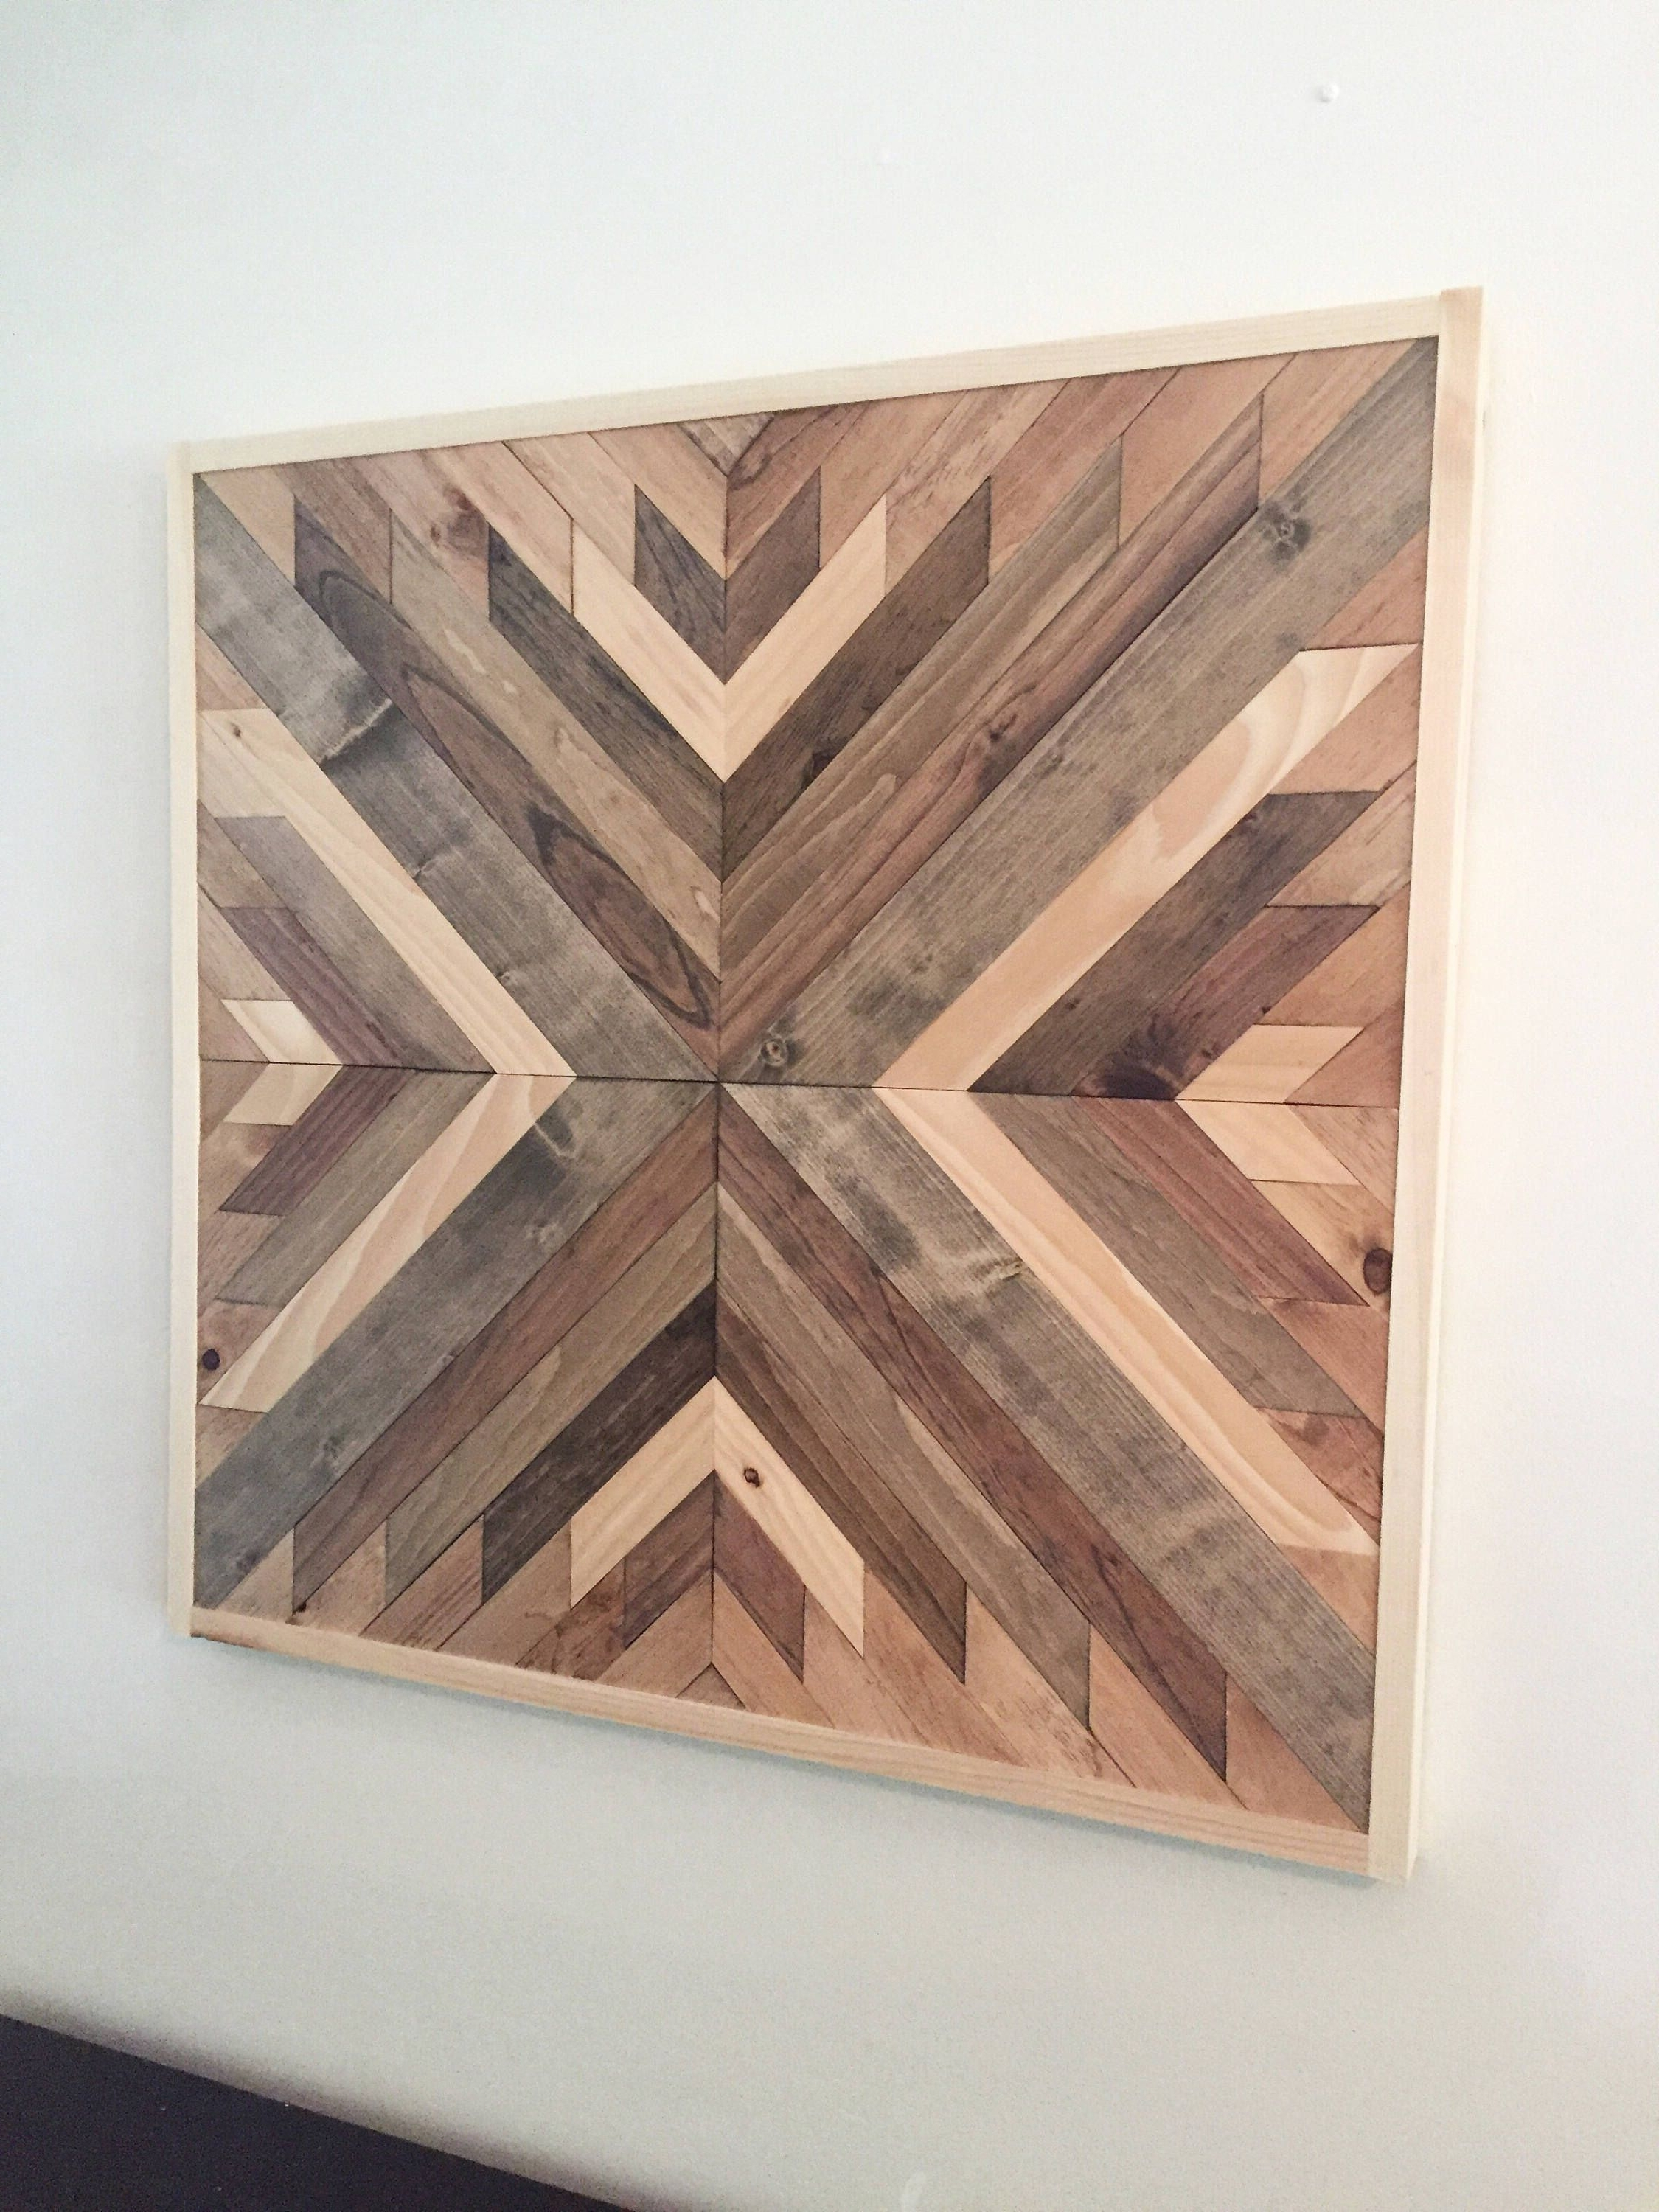 Reclaimed Wood Wall Art Regarding 2017 Reclaimed Wood Wall Art, Wood Wall Decor, Farmhouse Decor, Rustic (View 9 of 15)